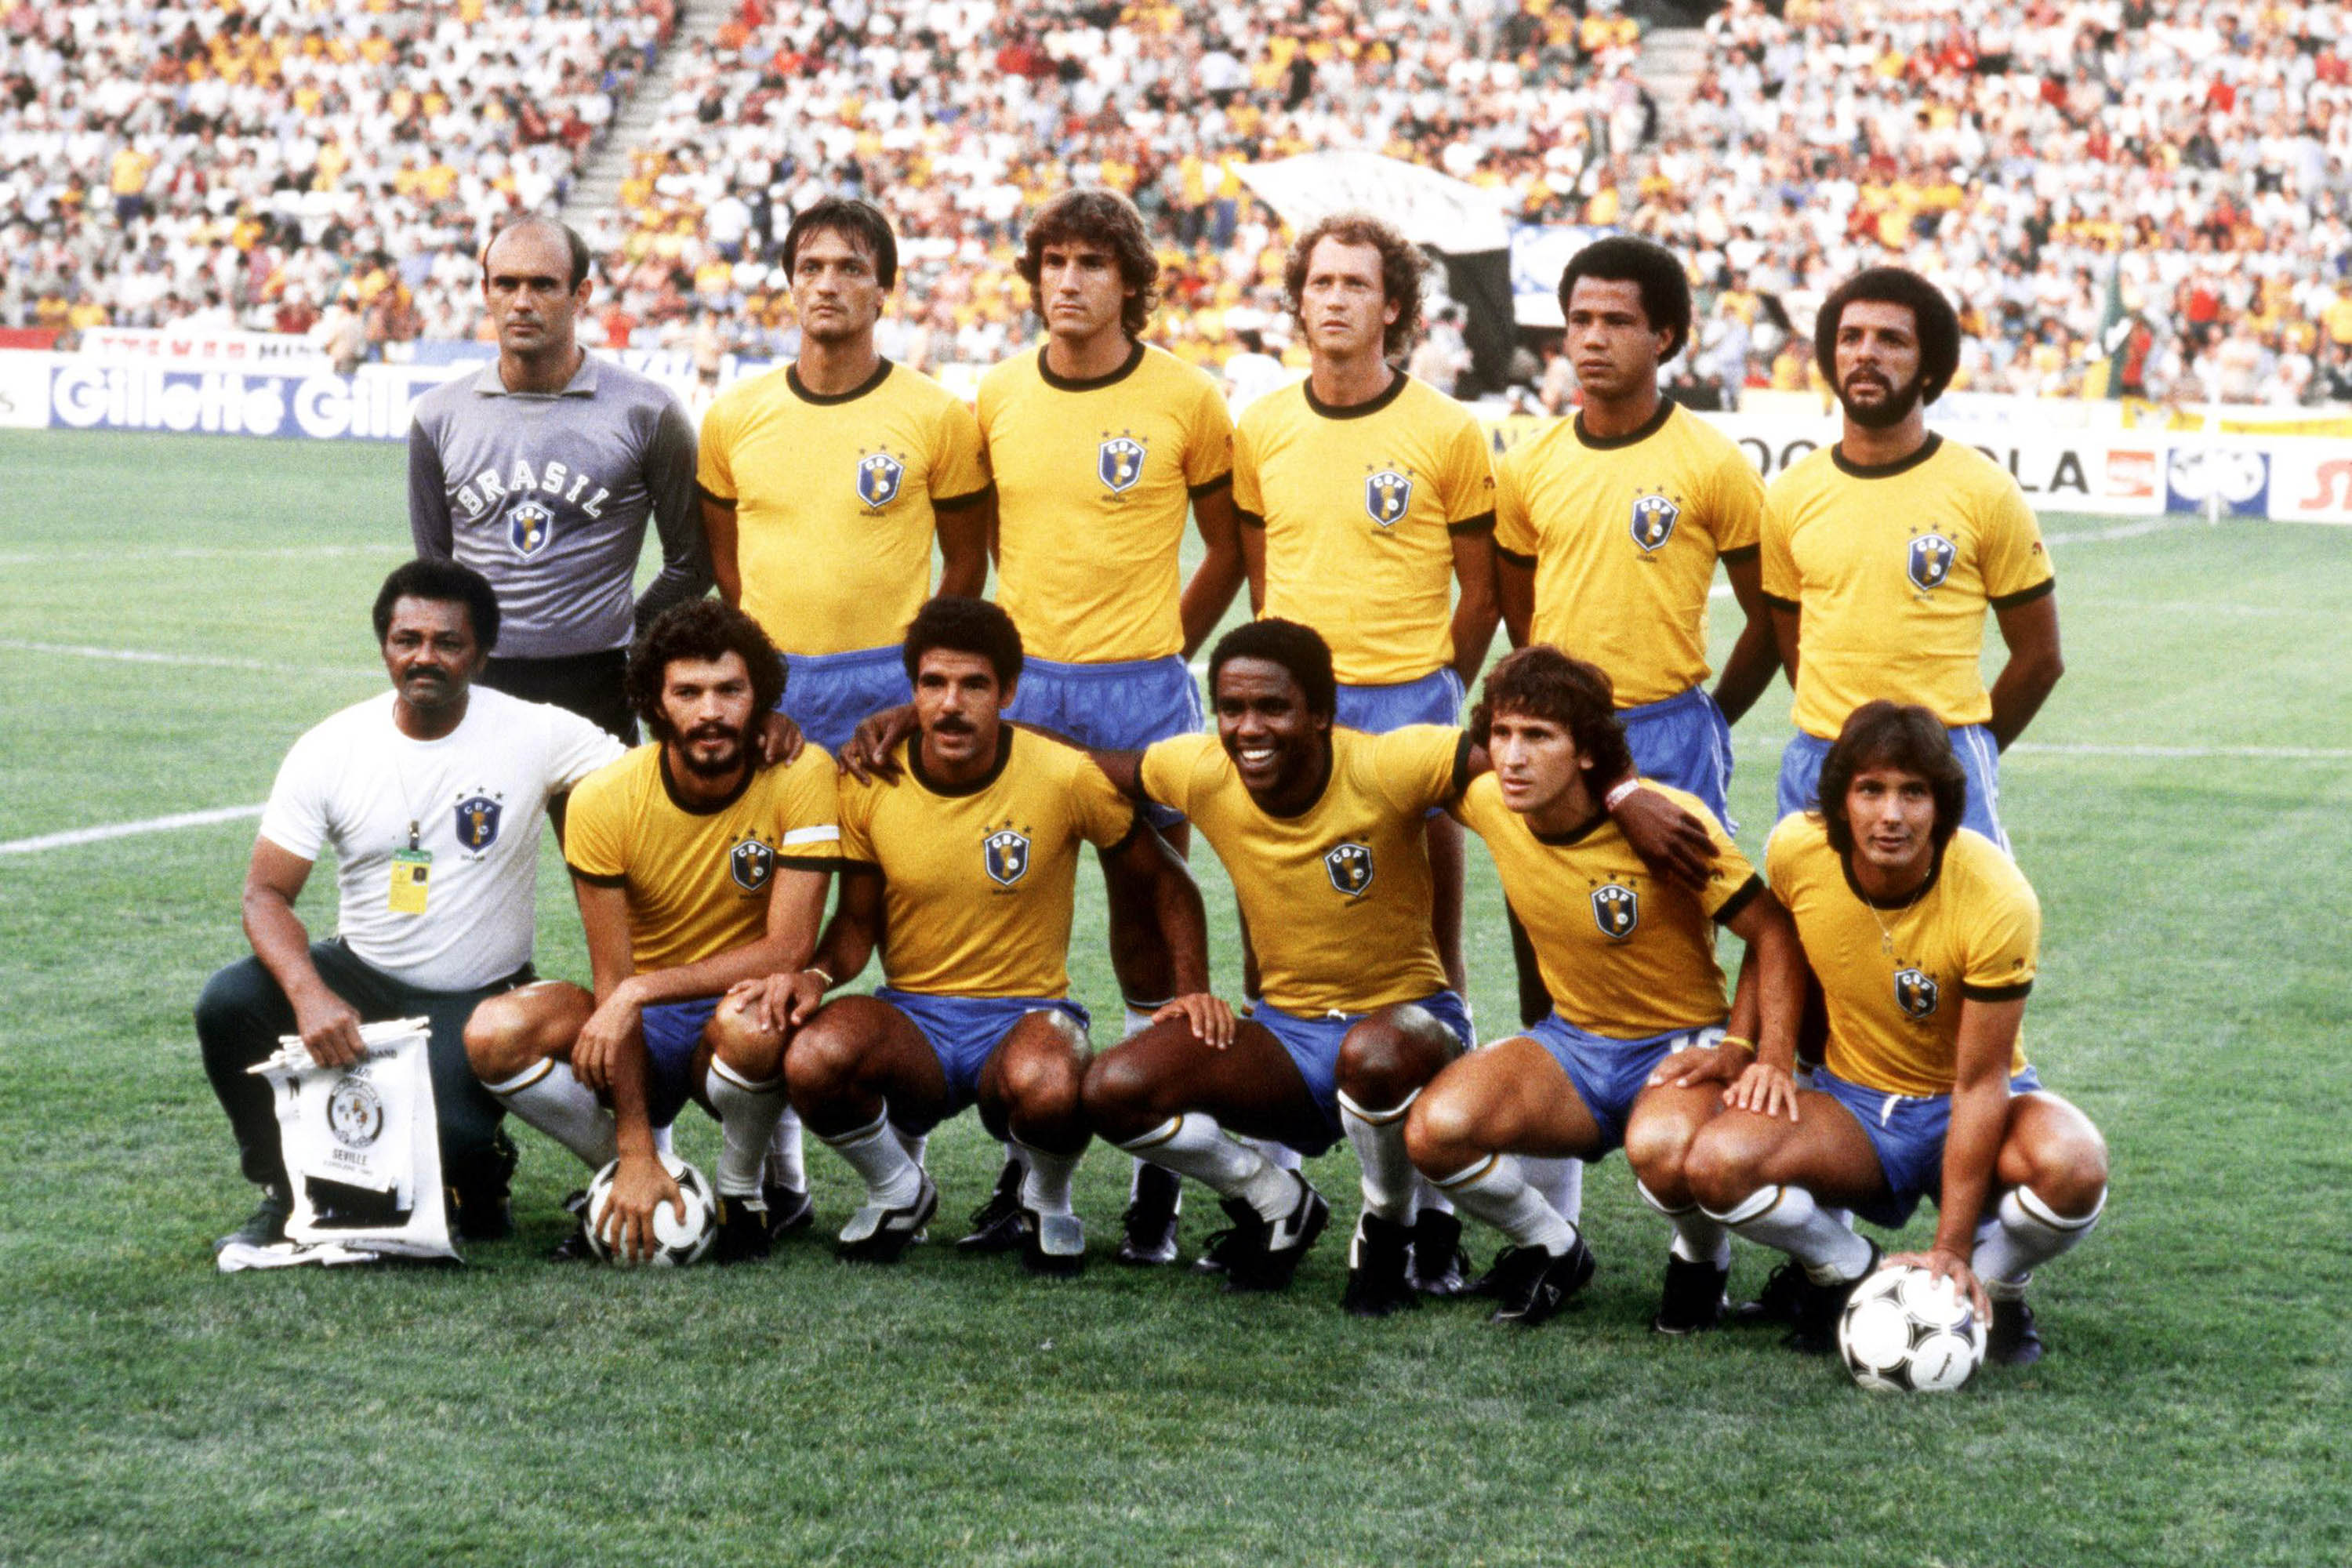 June 1986: The best Brazilian team never to have won a World Cup. Sócrates (bottom, second from left) captained this star-studded national team. (Photograph by Peter Robinson/Getty Images)